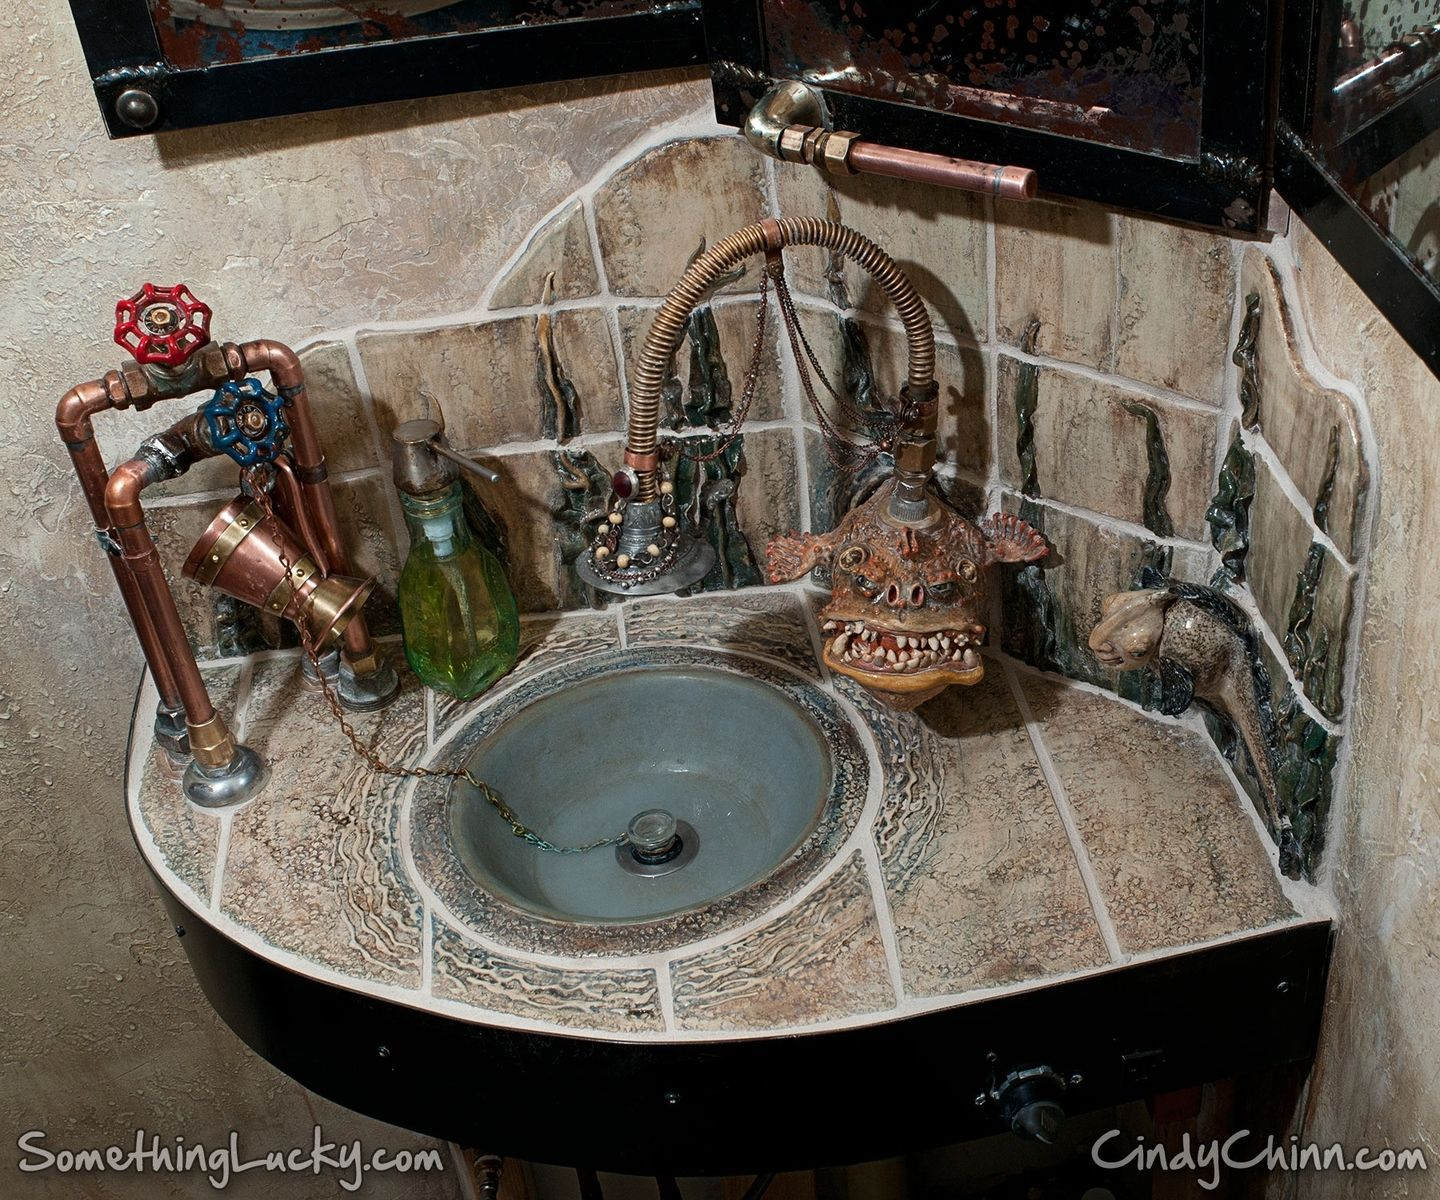 Steampunk Sculpted Tile Sink And Vanity Steampunk Bathroom Steampunk Bathroom Decor Steampunk Kitchen [ 1200 x 1440 Pixel ]